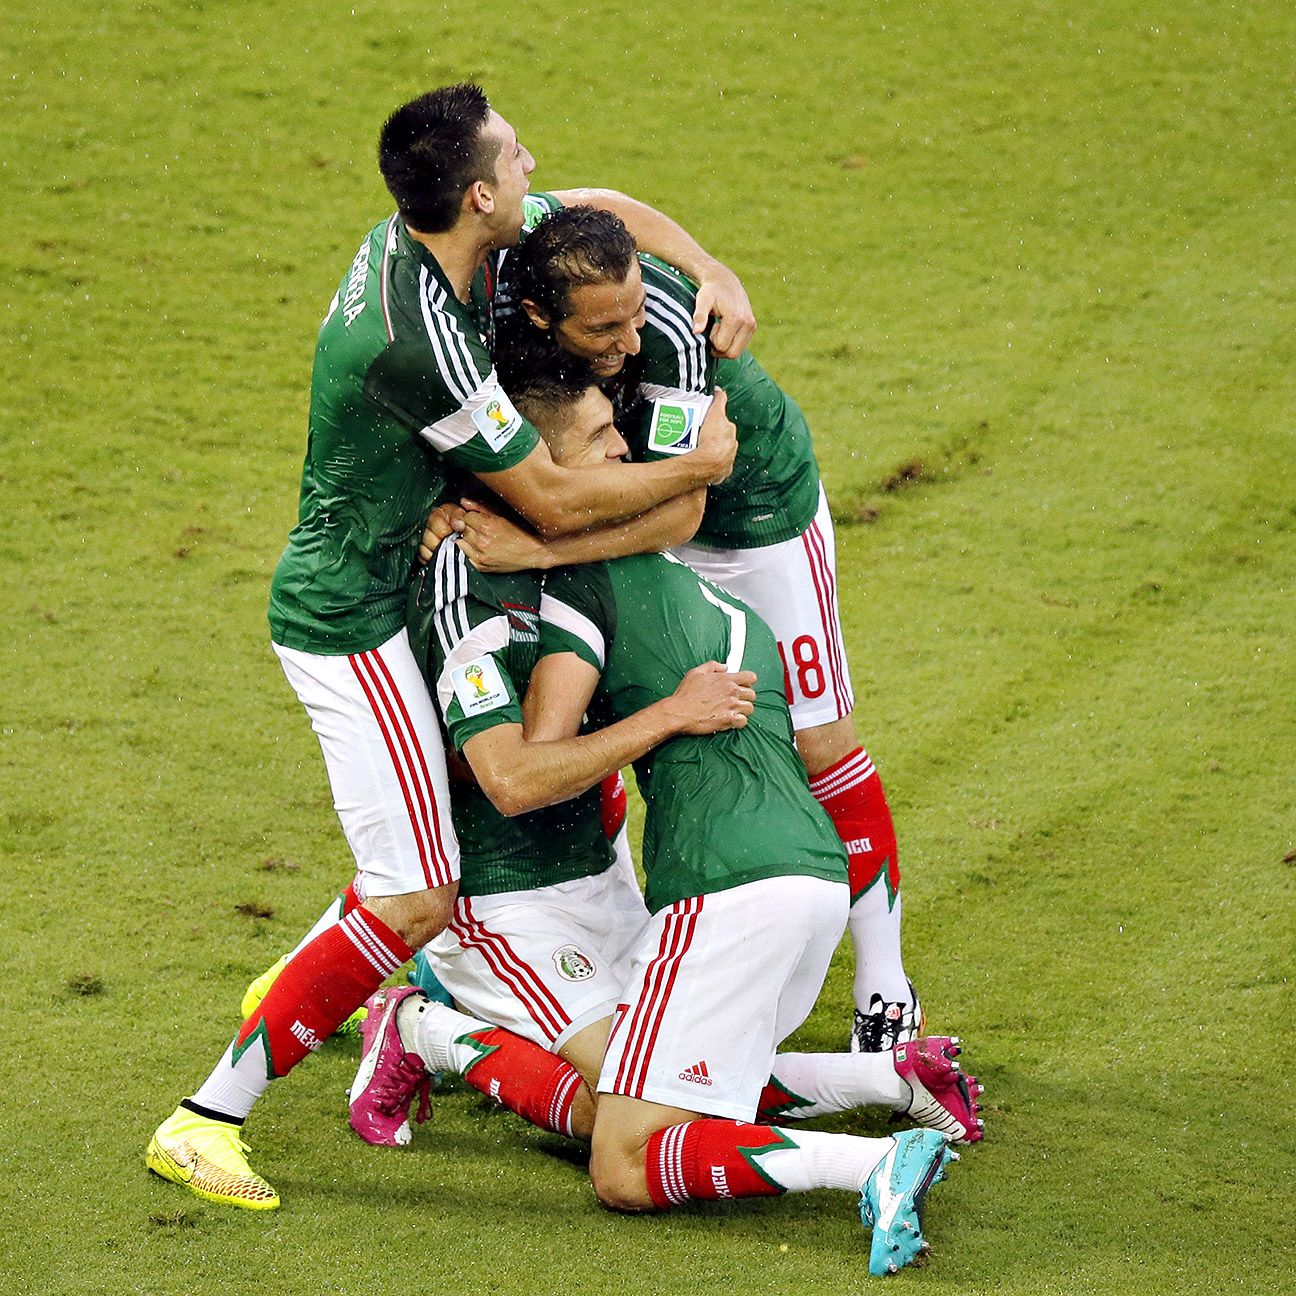 Mexico head into next week's clash with Brazil with three precious points in their pocket.